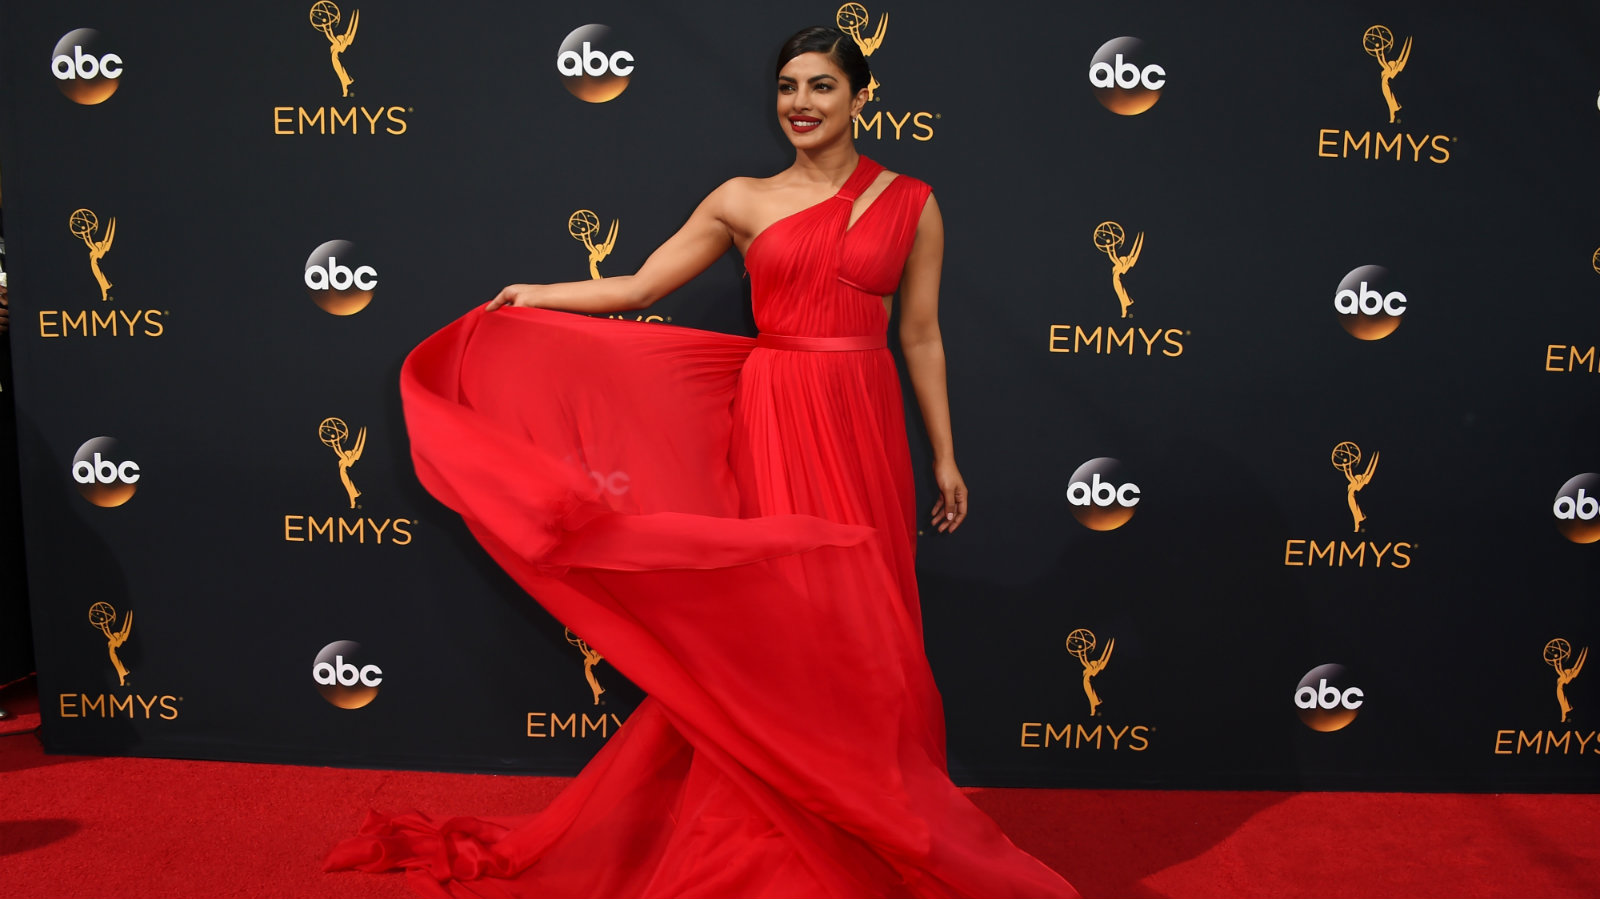 Priyanka Chopra arrives at the 68th Primetime Emmy Awards on Sunday, Sept. 18, 2016, at the Microsoft Theater in Los Angeles.